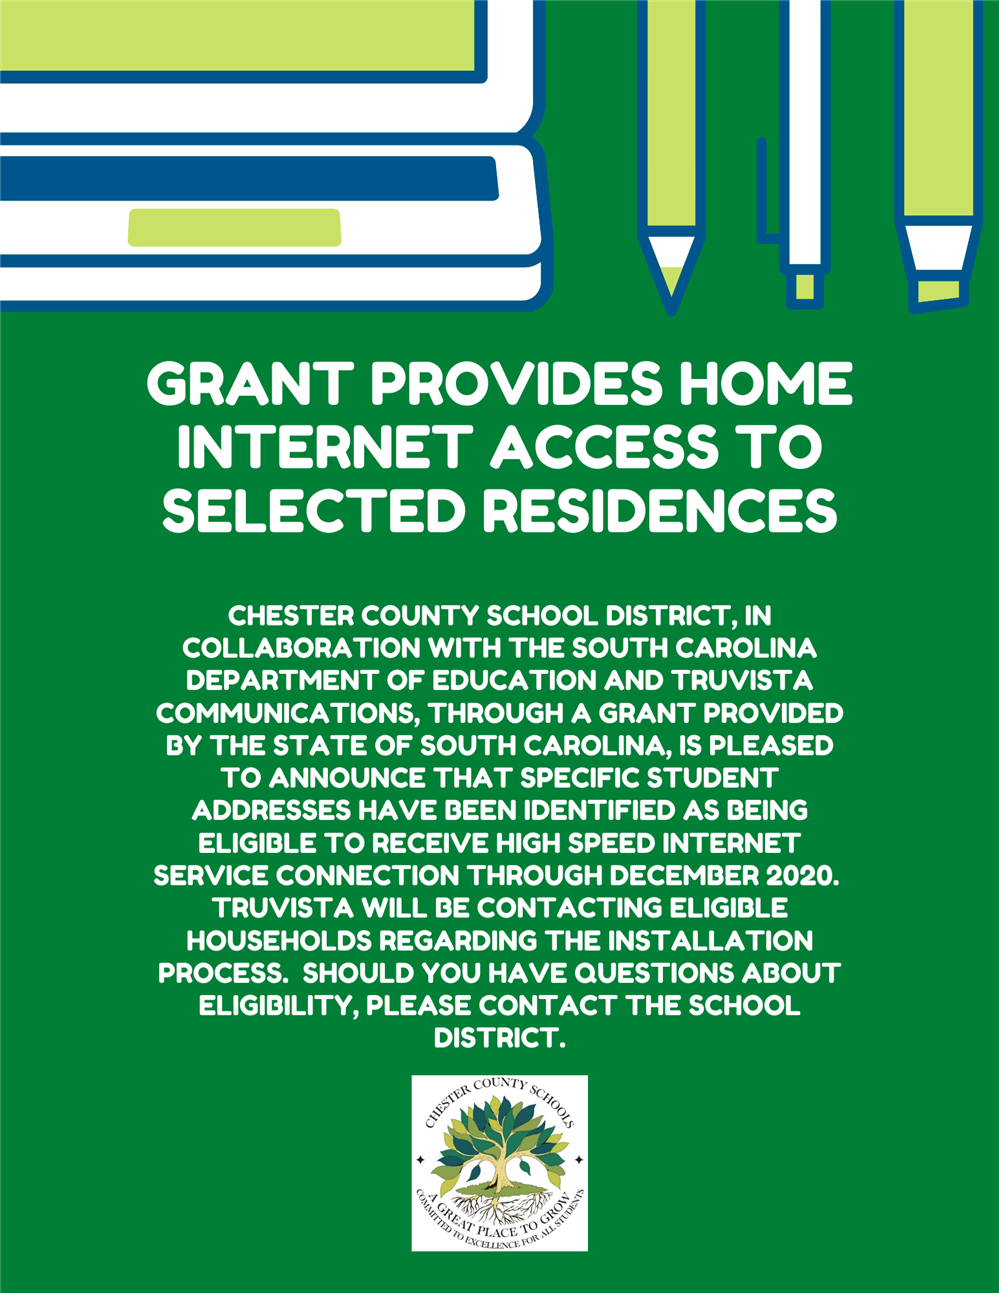 Internet Grant for Selected Residents